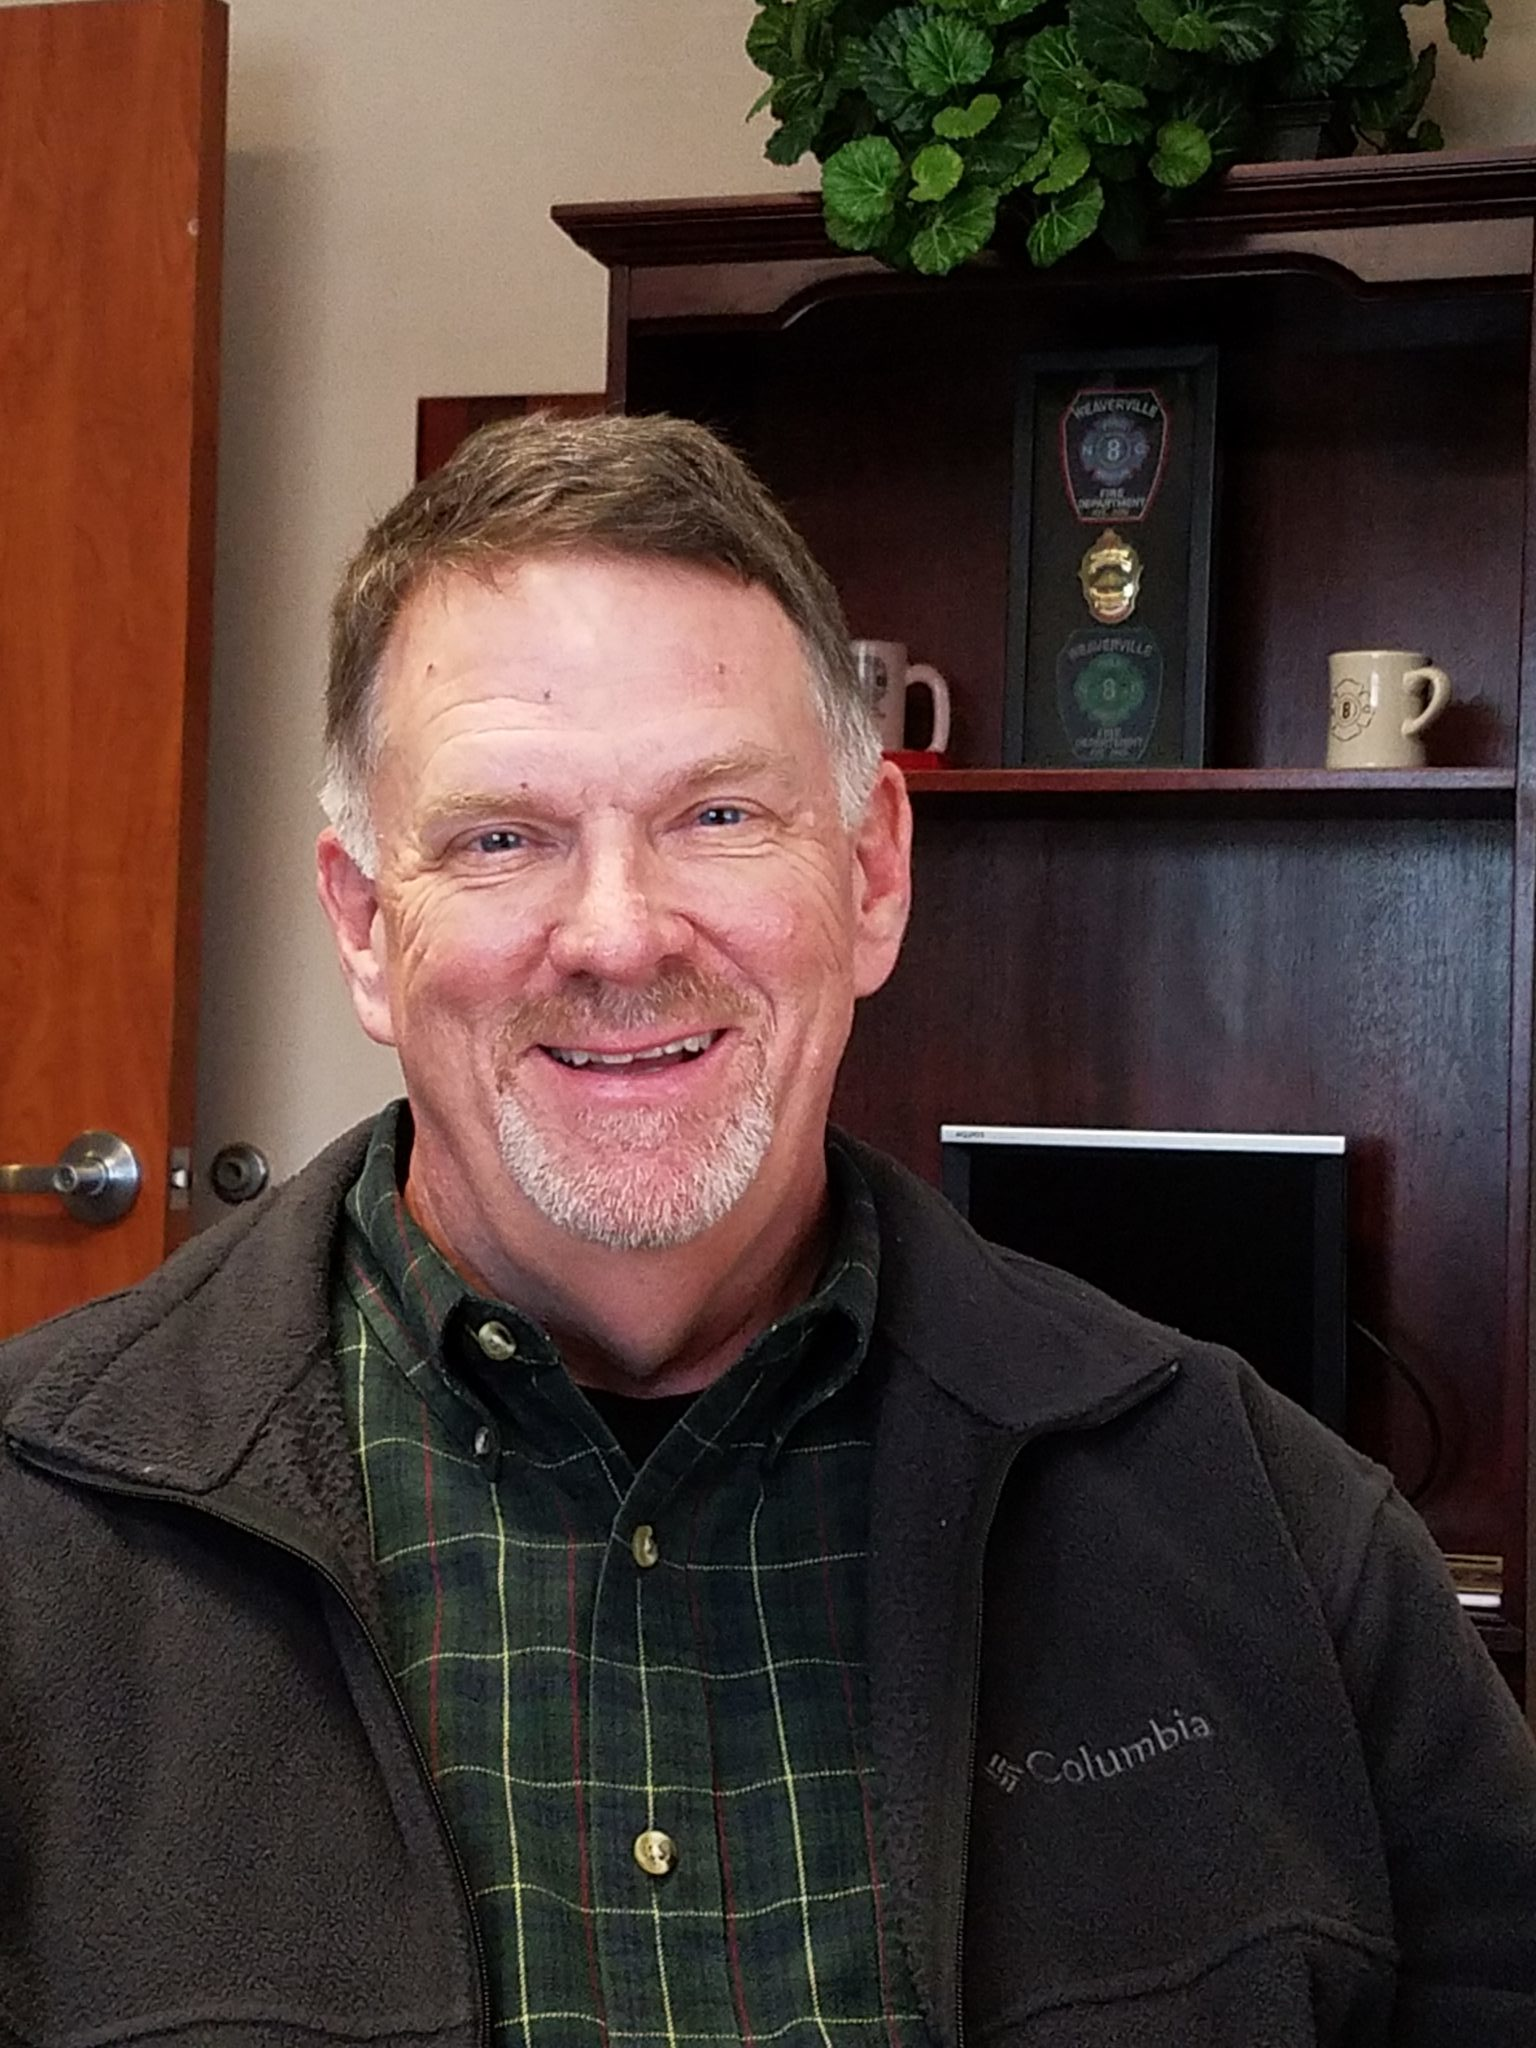 Dale Pennell, Public Works Director